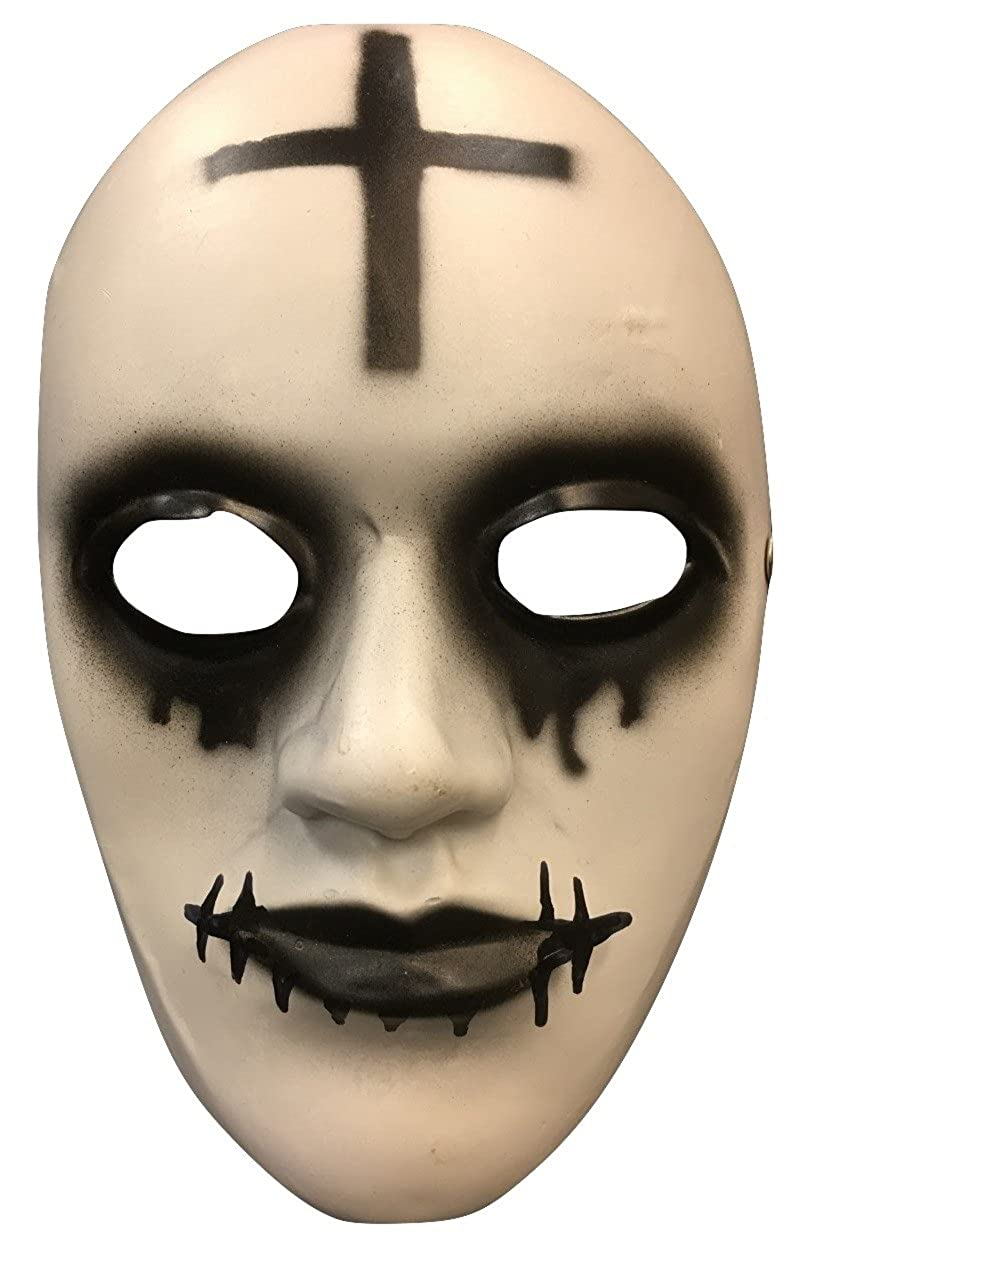 Amazon.com: The Purge Anarchy Movie Halloween Mask Cross Deluxe Fibreglass W/ Adjustable Buckle Strap …: Clothing